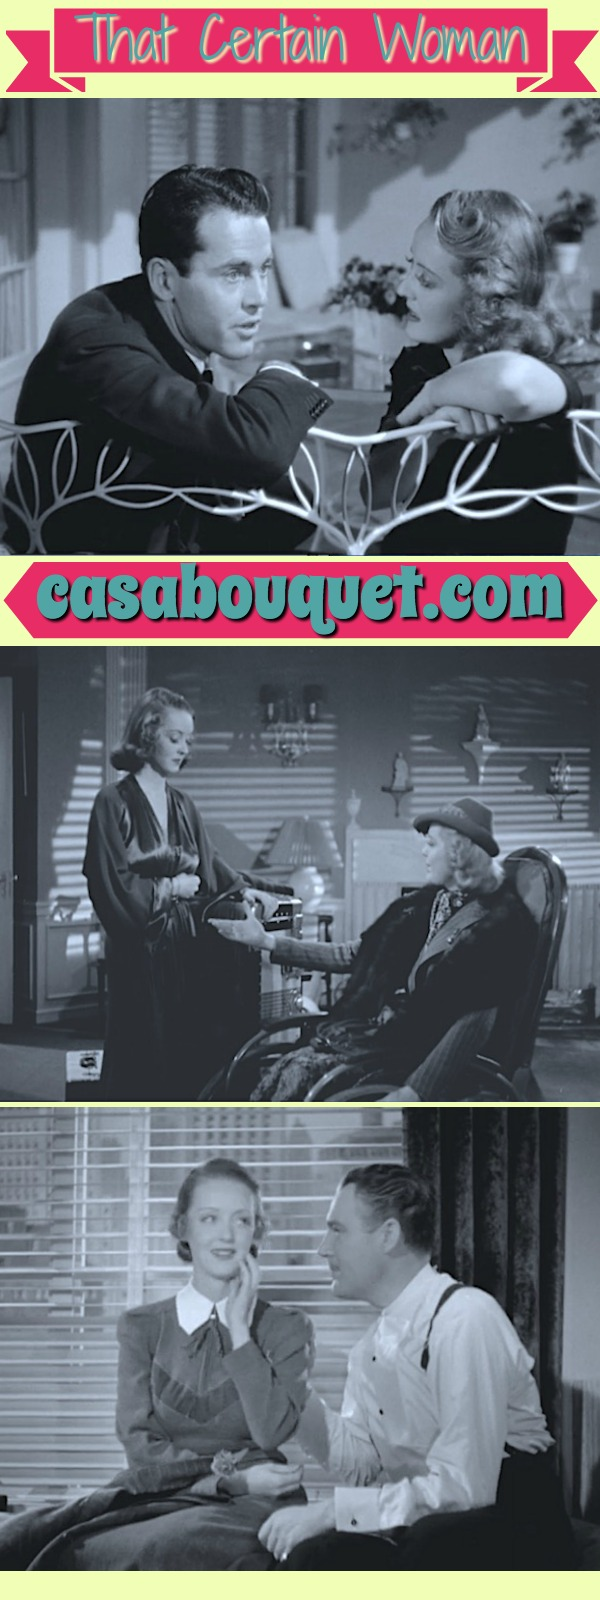 Bette Davis is a St. Valentine's Day Massacre widow trying to live far away from gang life. Henry Fonda is her society lover in this three-hankie drama. Lisa's Home Bijou: That Certain Woman (1937)